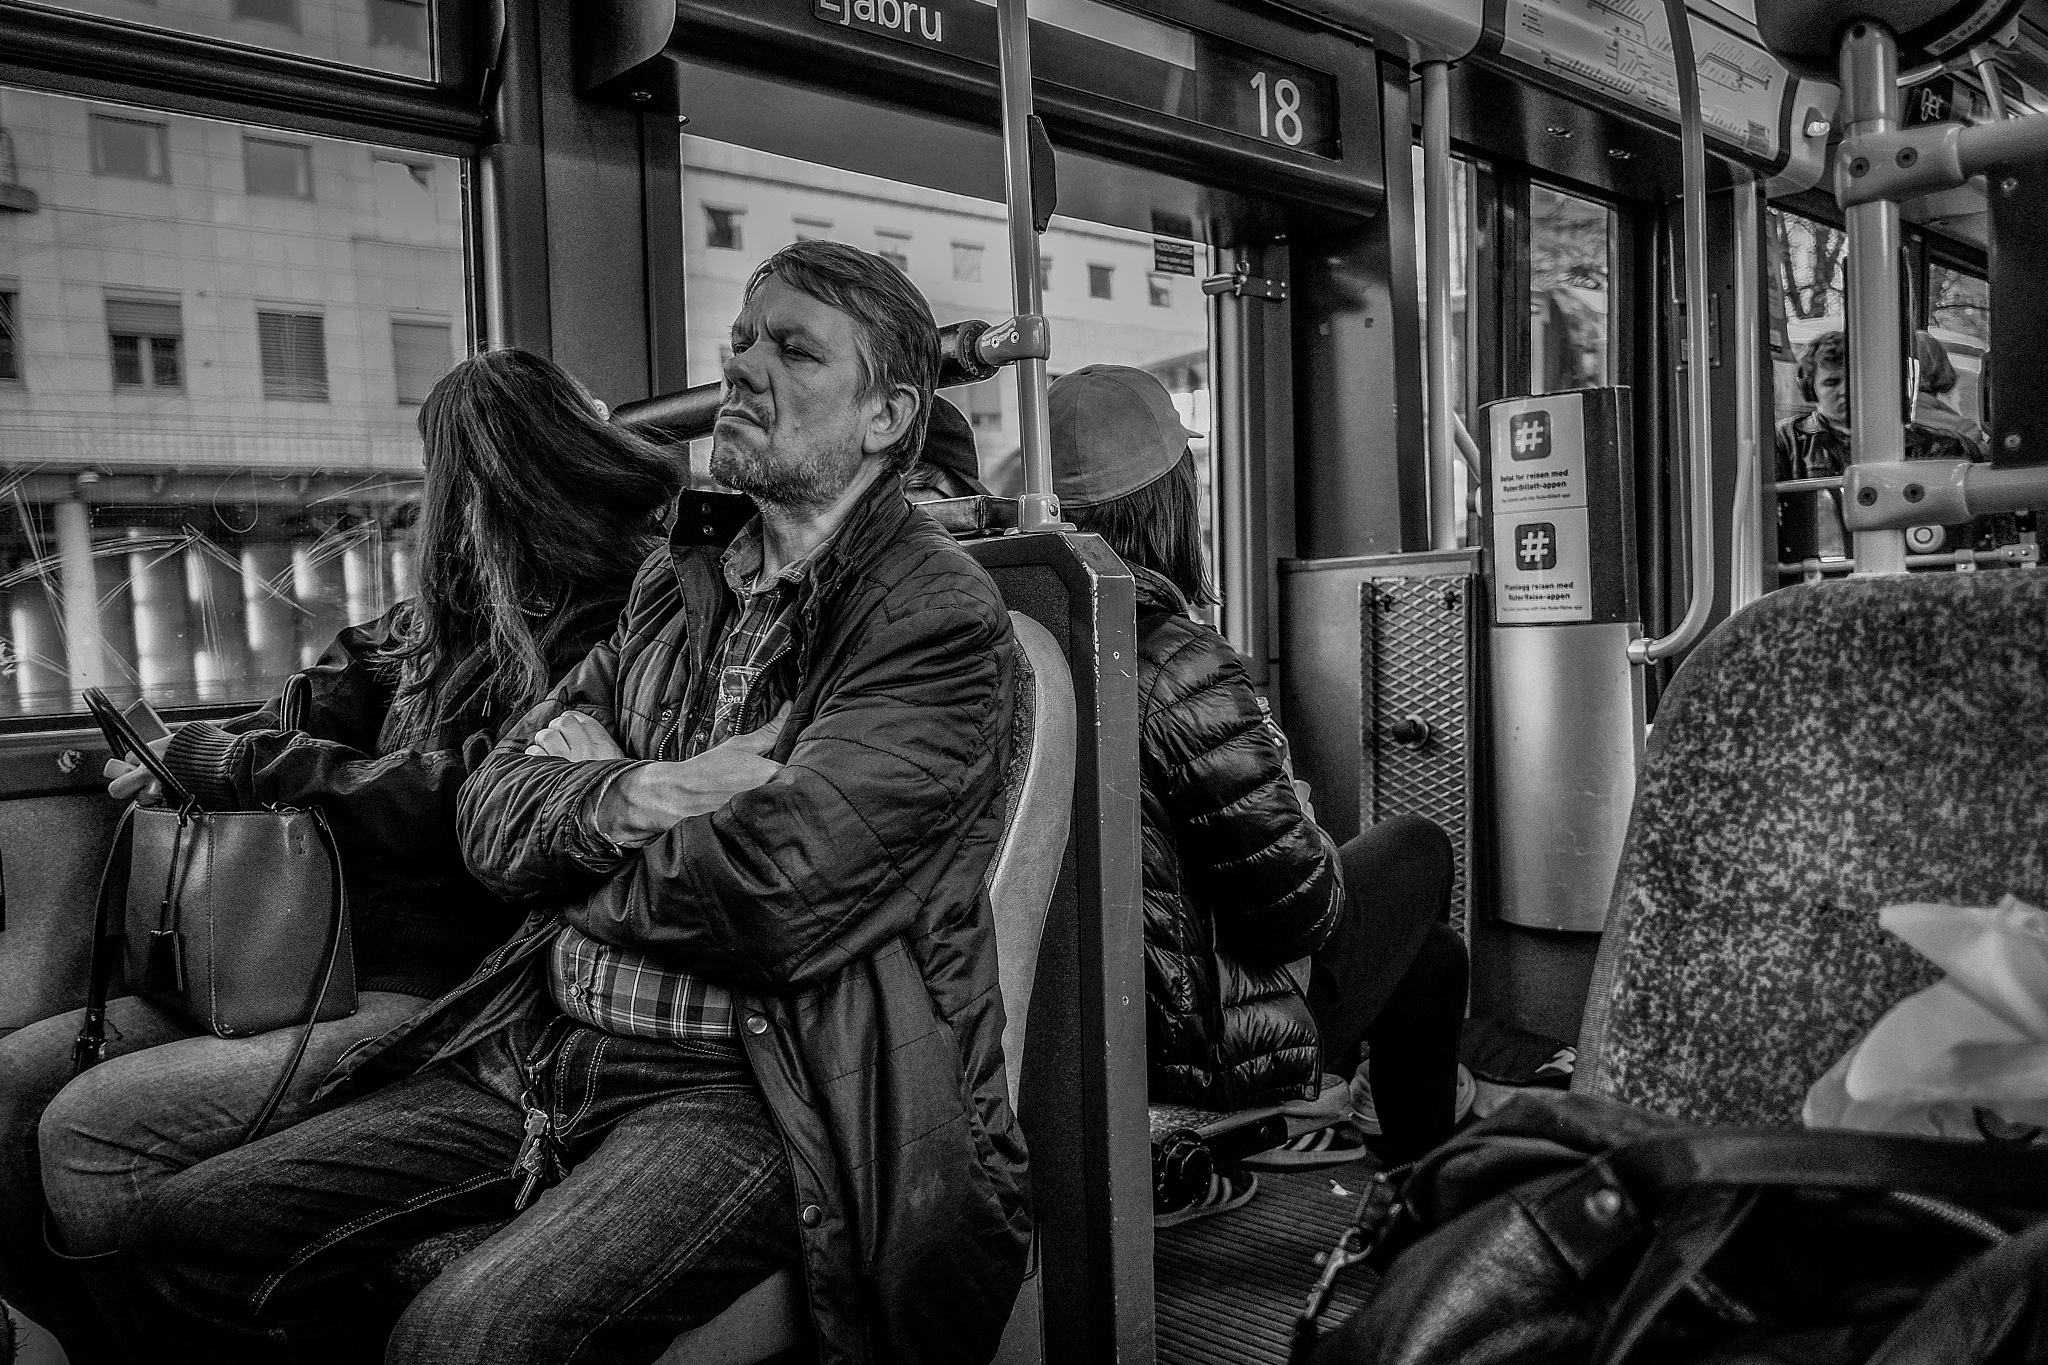 In The Tram from The North by Goran Jorganovich